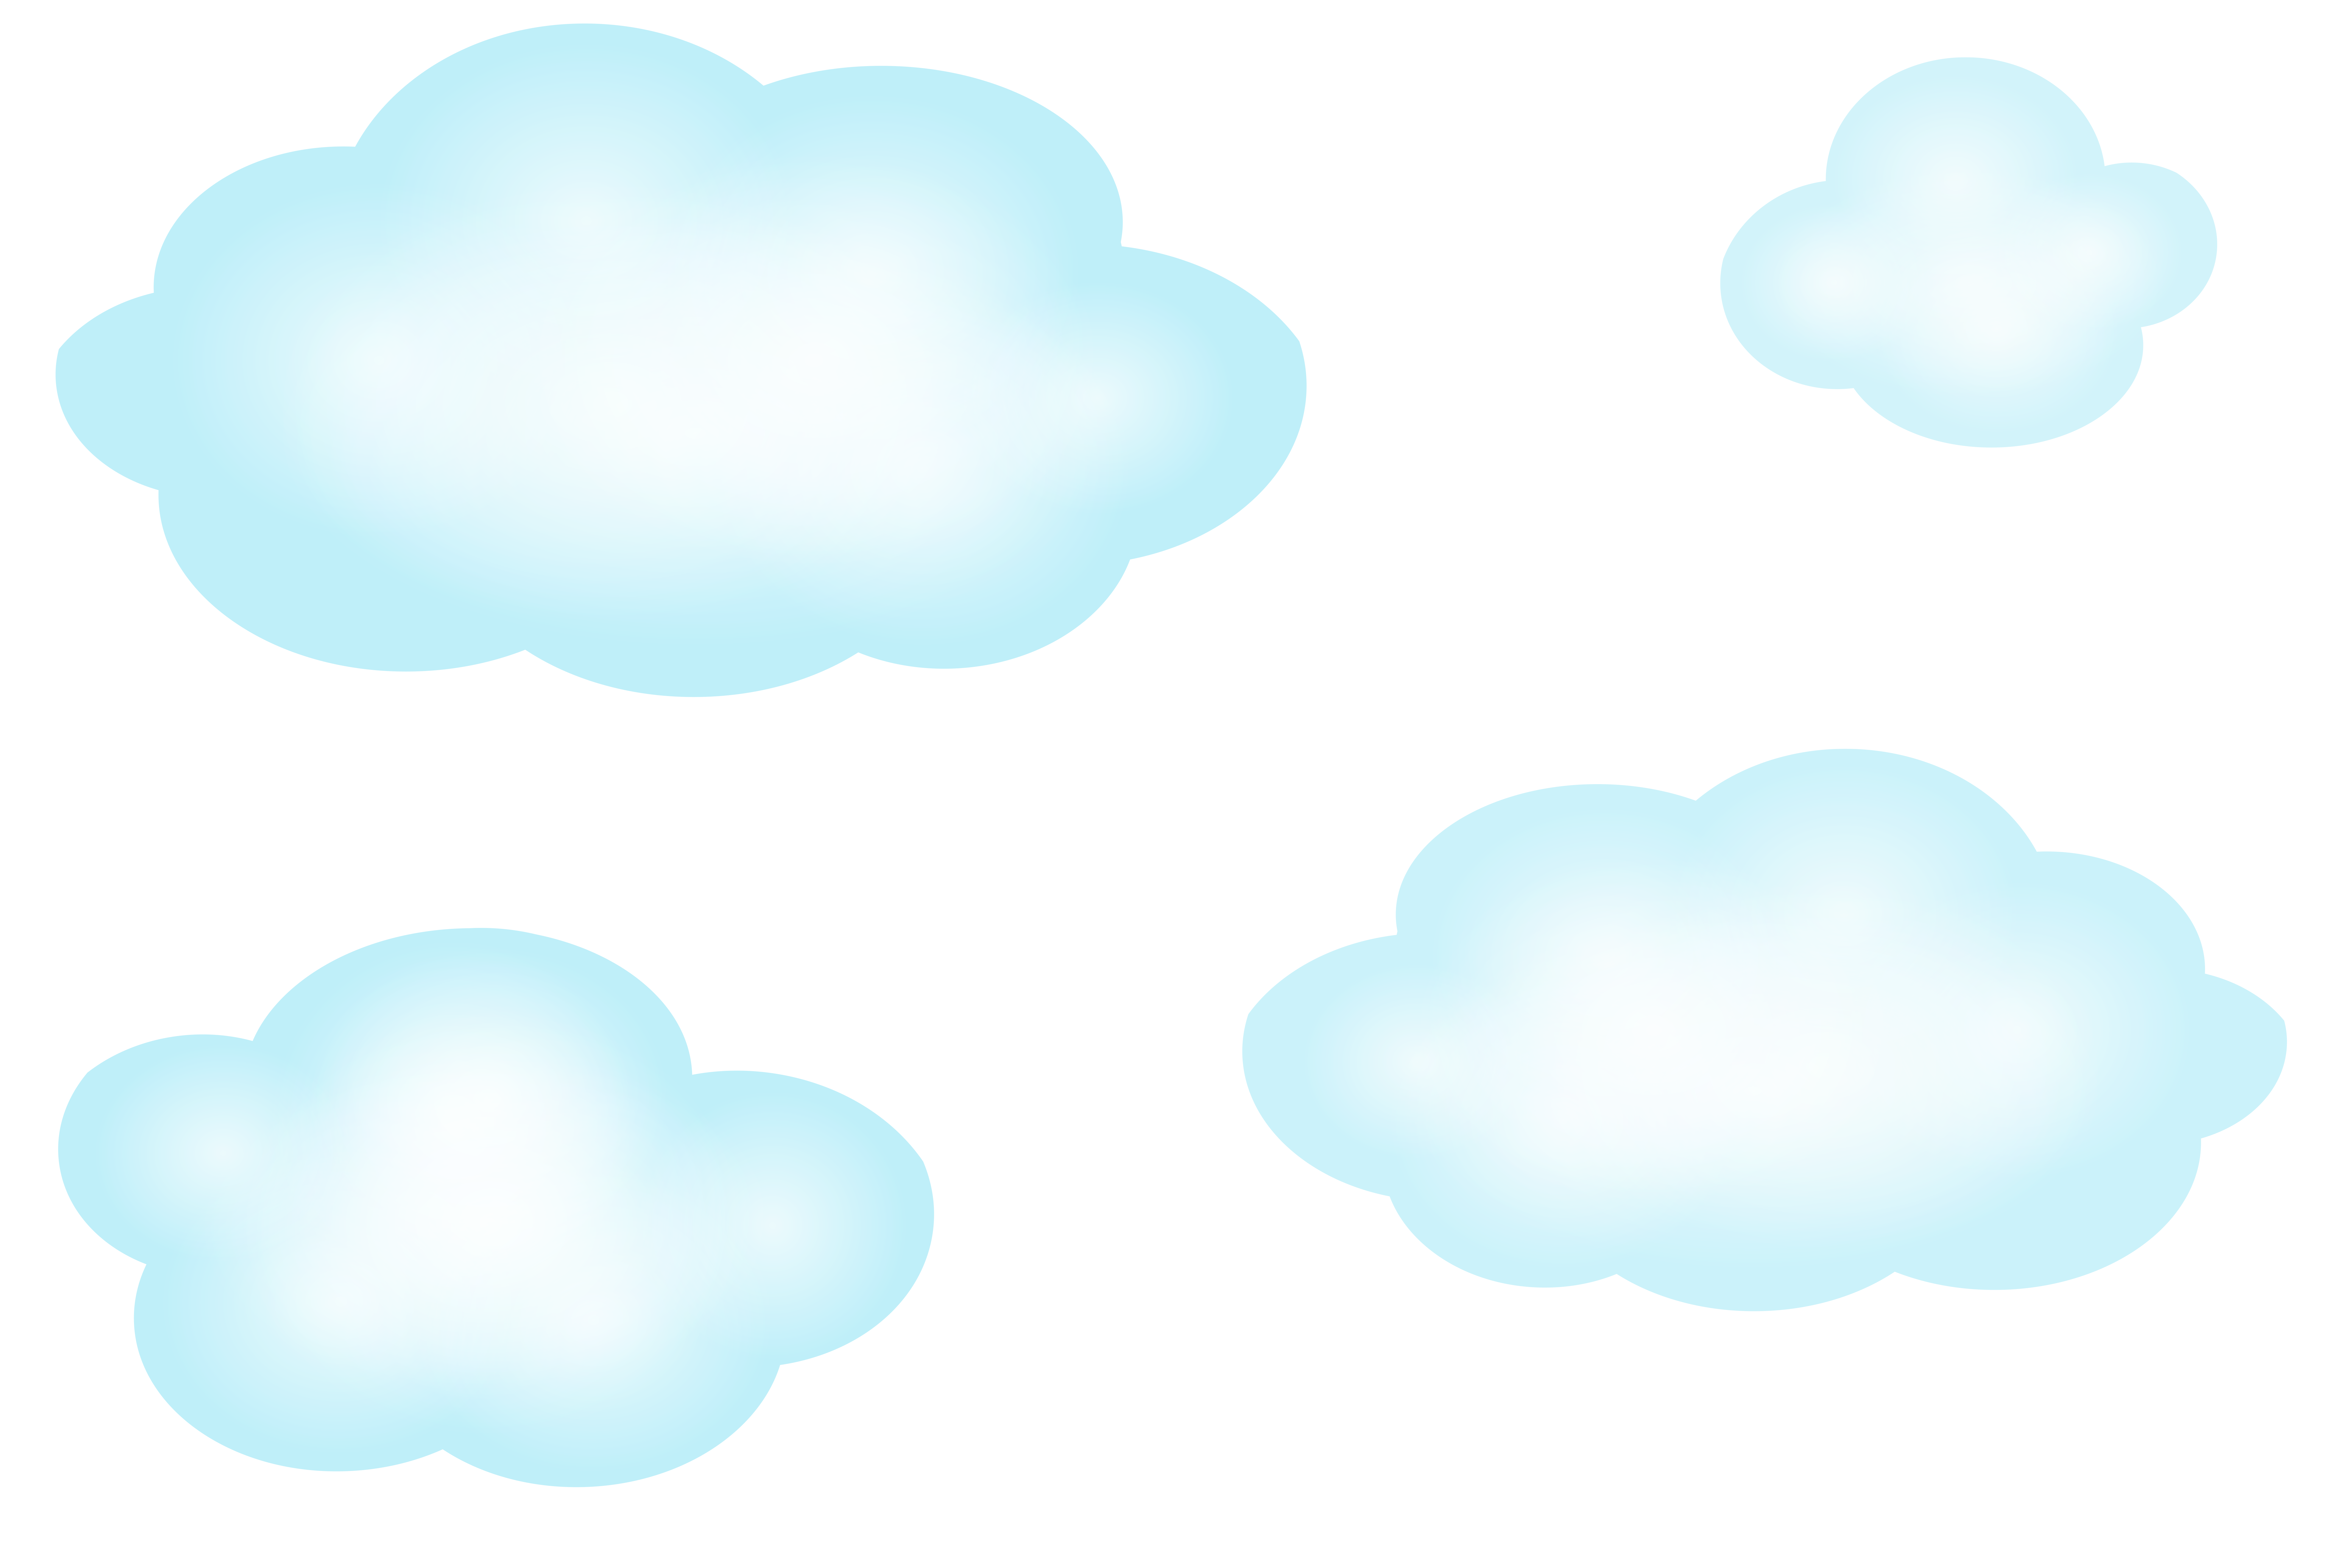 Png picture gallery yopriceville. Clouds clipart bmp